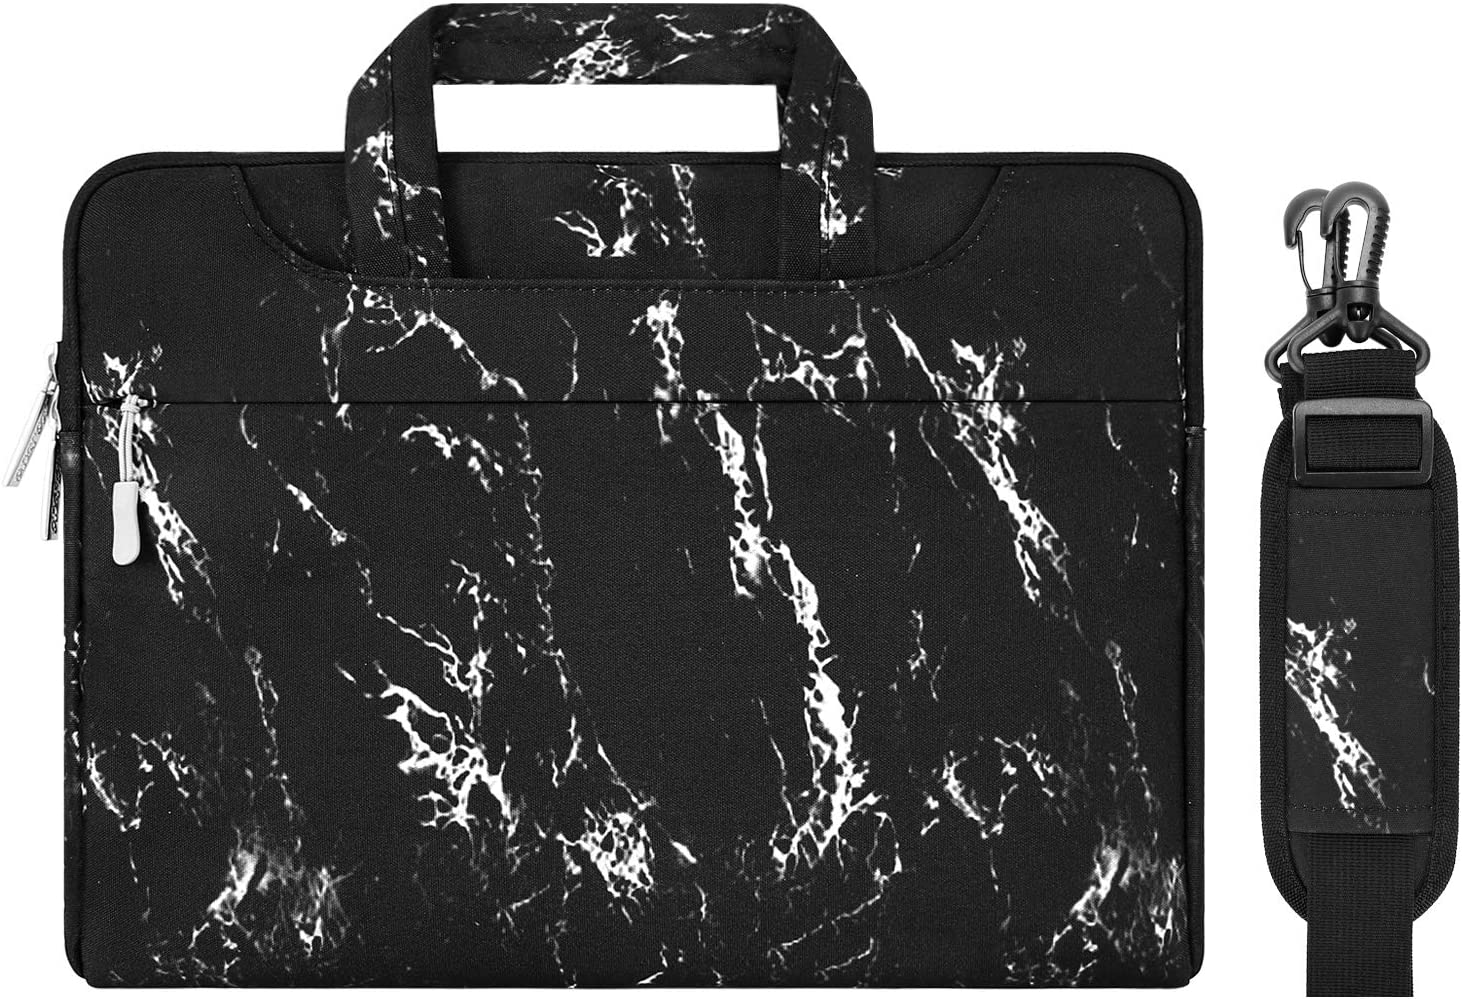 MOSISO Laptop Shoulder Bag Compatible with 13-13.3 inch MacBook Pro, MacBook Air, Notebook Computer, Marble Pattern Carrying Briefcase Sleeve Case, Black